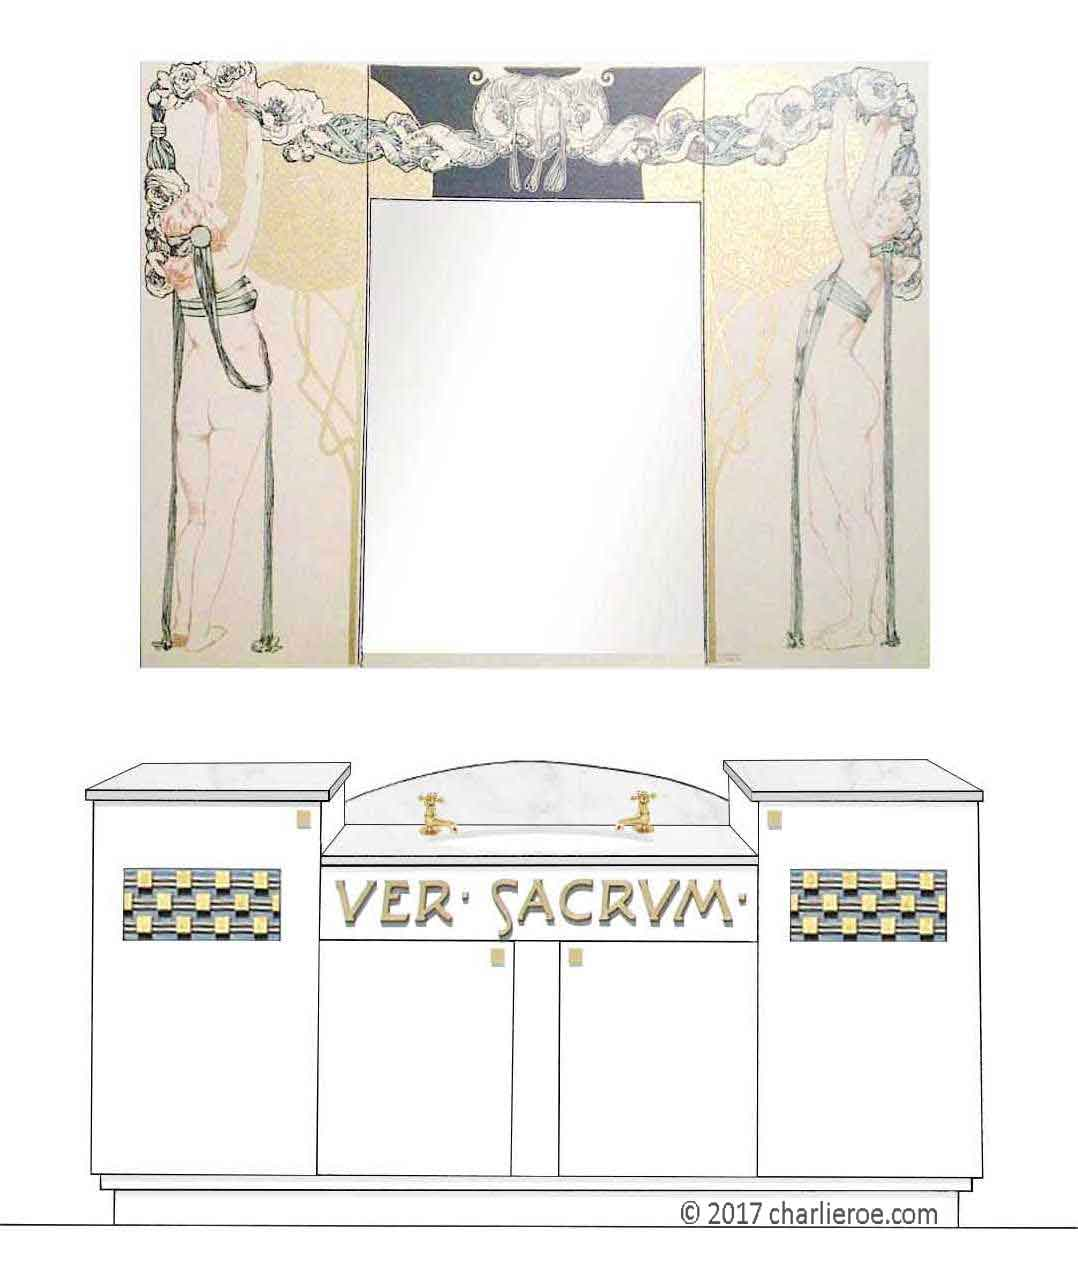 new Vienna Secession Art Nouveau Jugendstil painted 4 door vanity unit with matching Koloman Moser wall mirror panel above